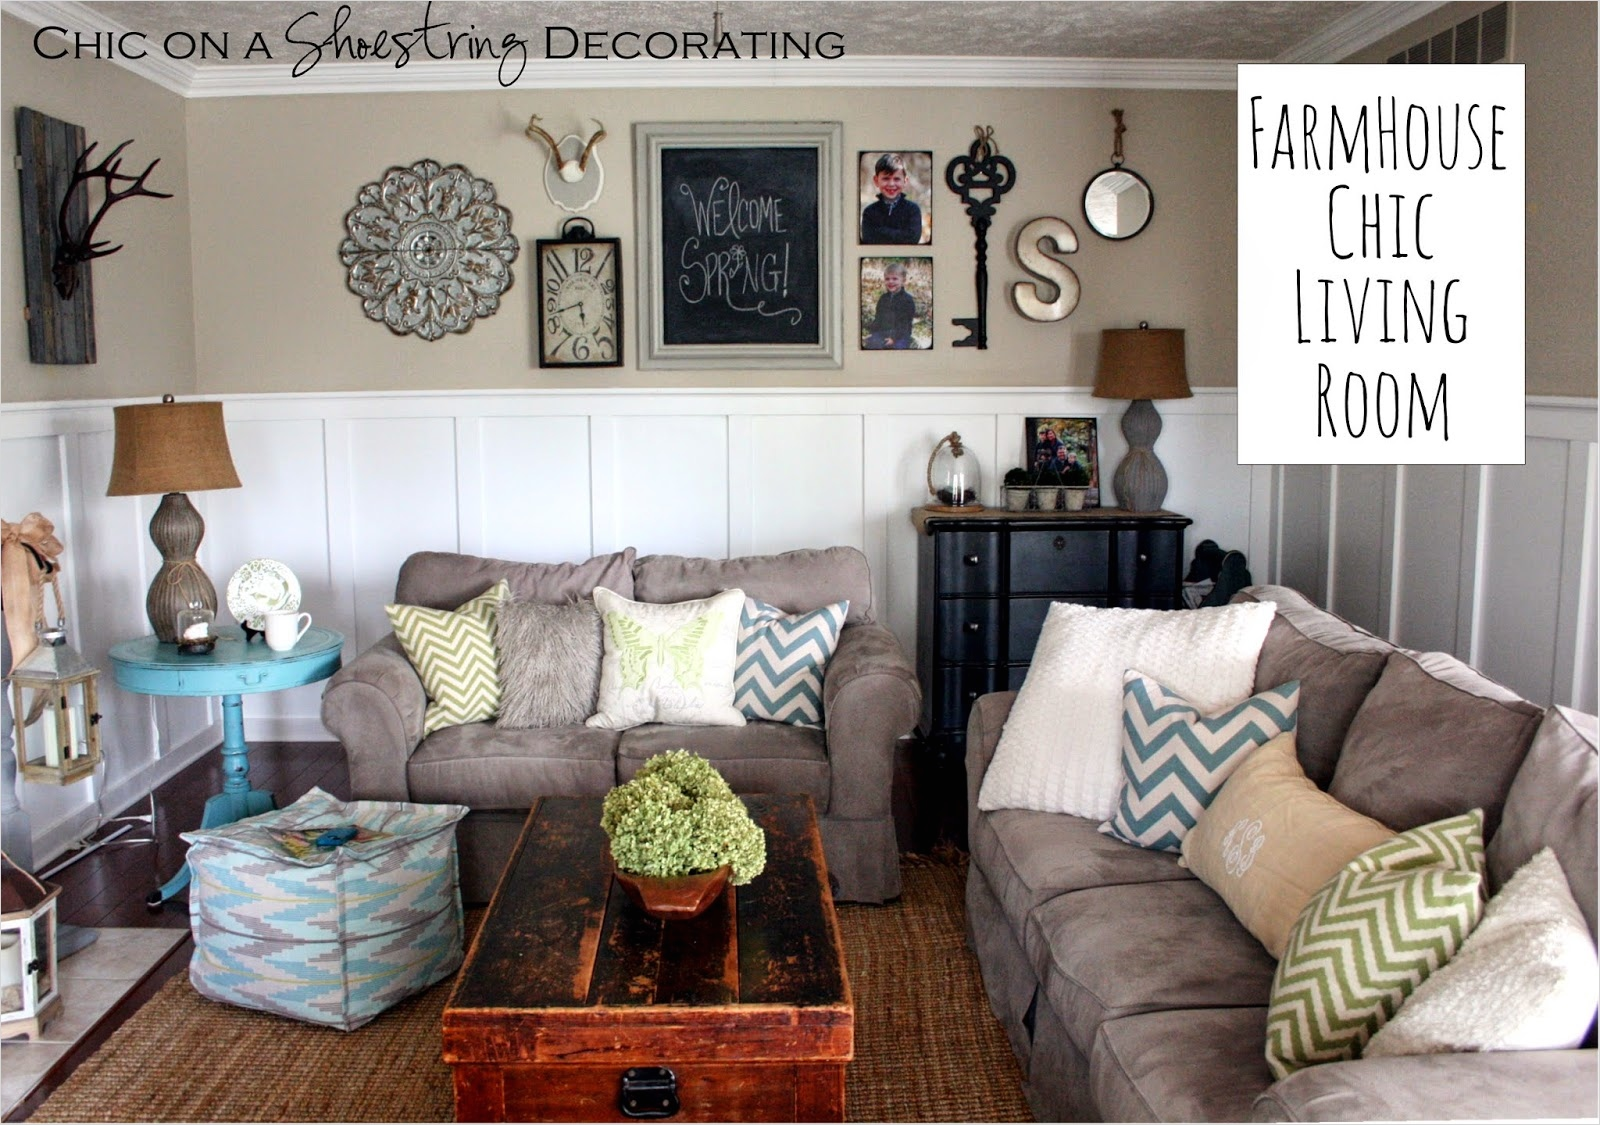 Farmhouse Chic Decorating Ideas 79 Chic On A Shoestring Decorating My Farmhouse Chic Living Room Reveal 9